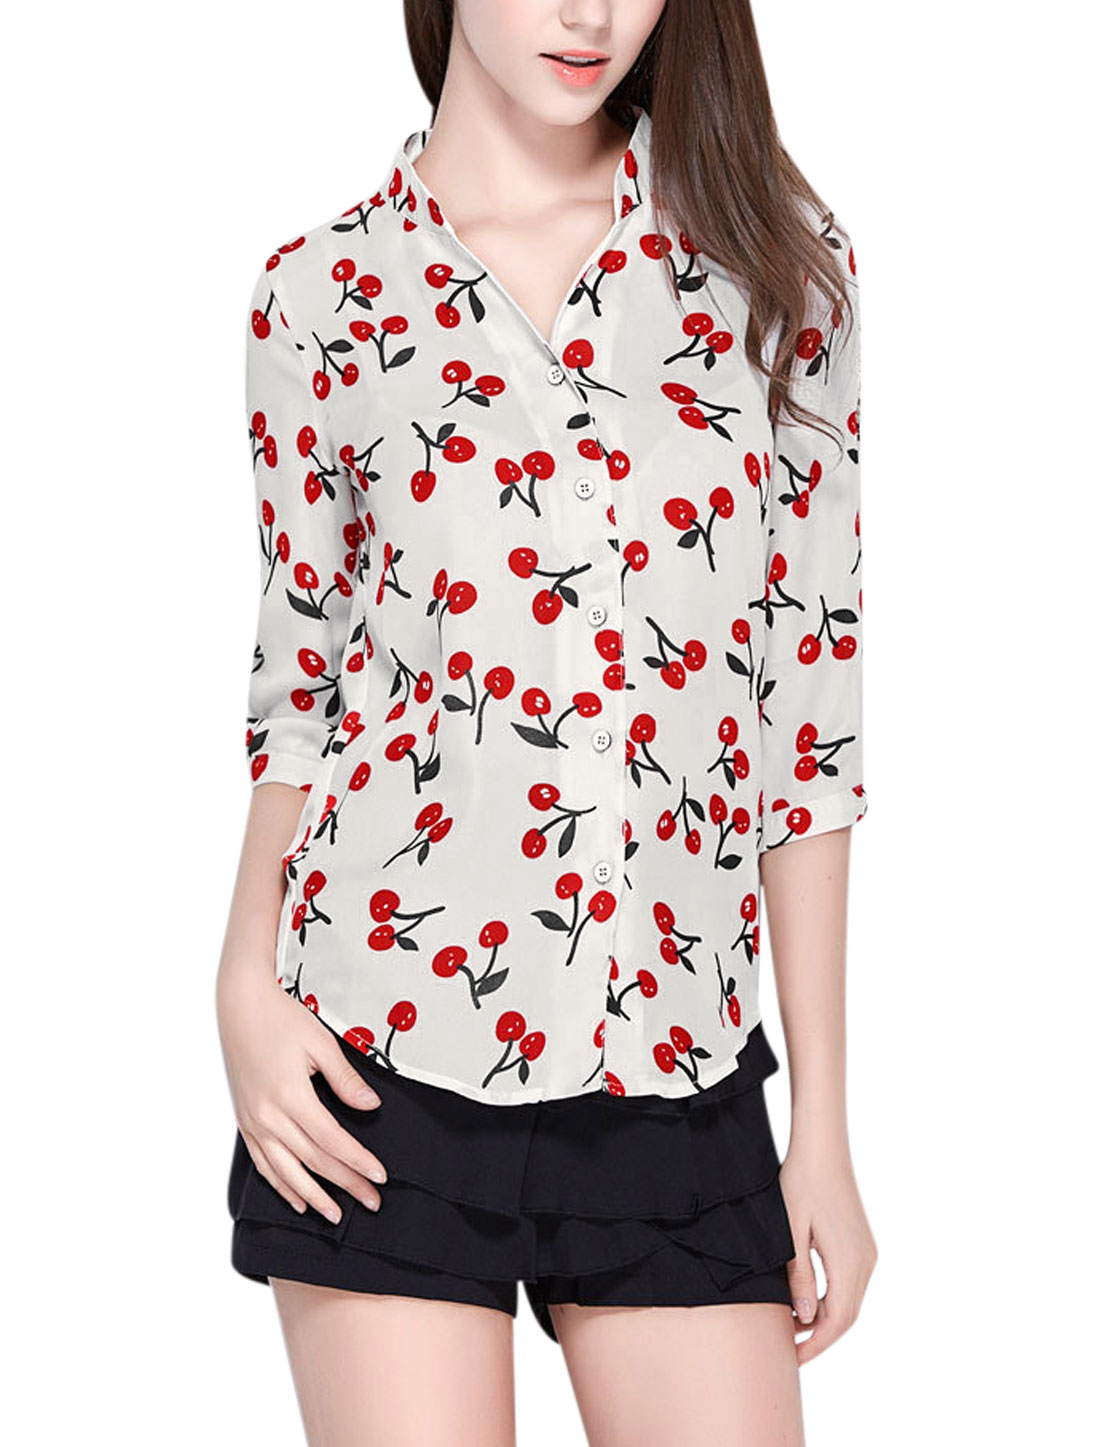 Woman Cherry Pattern Stand Collar 3/4 Roll Up Sleeves Shirt White M